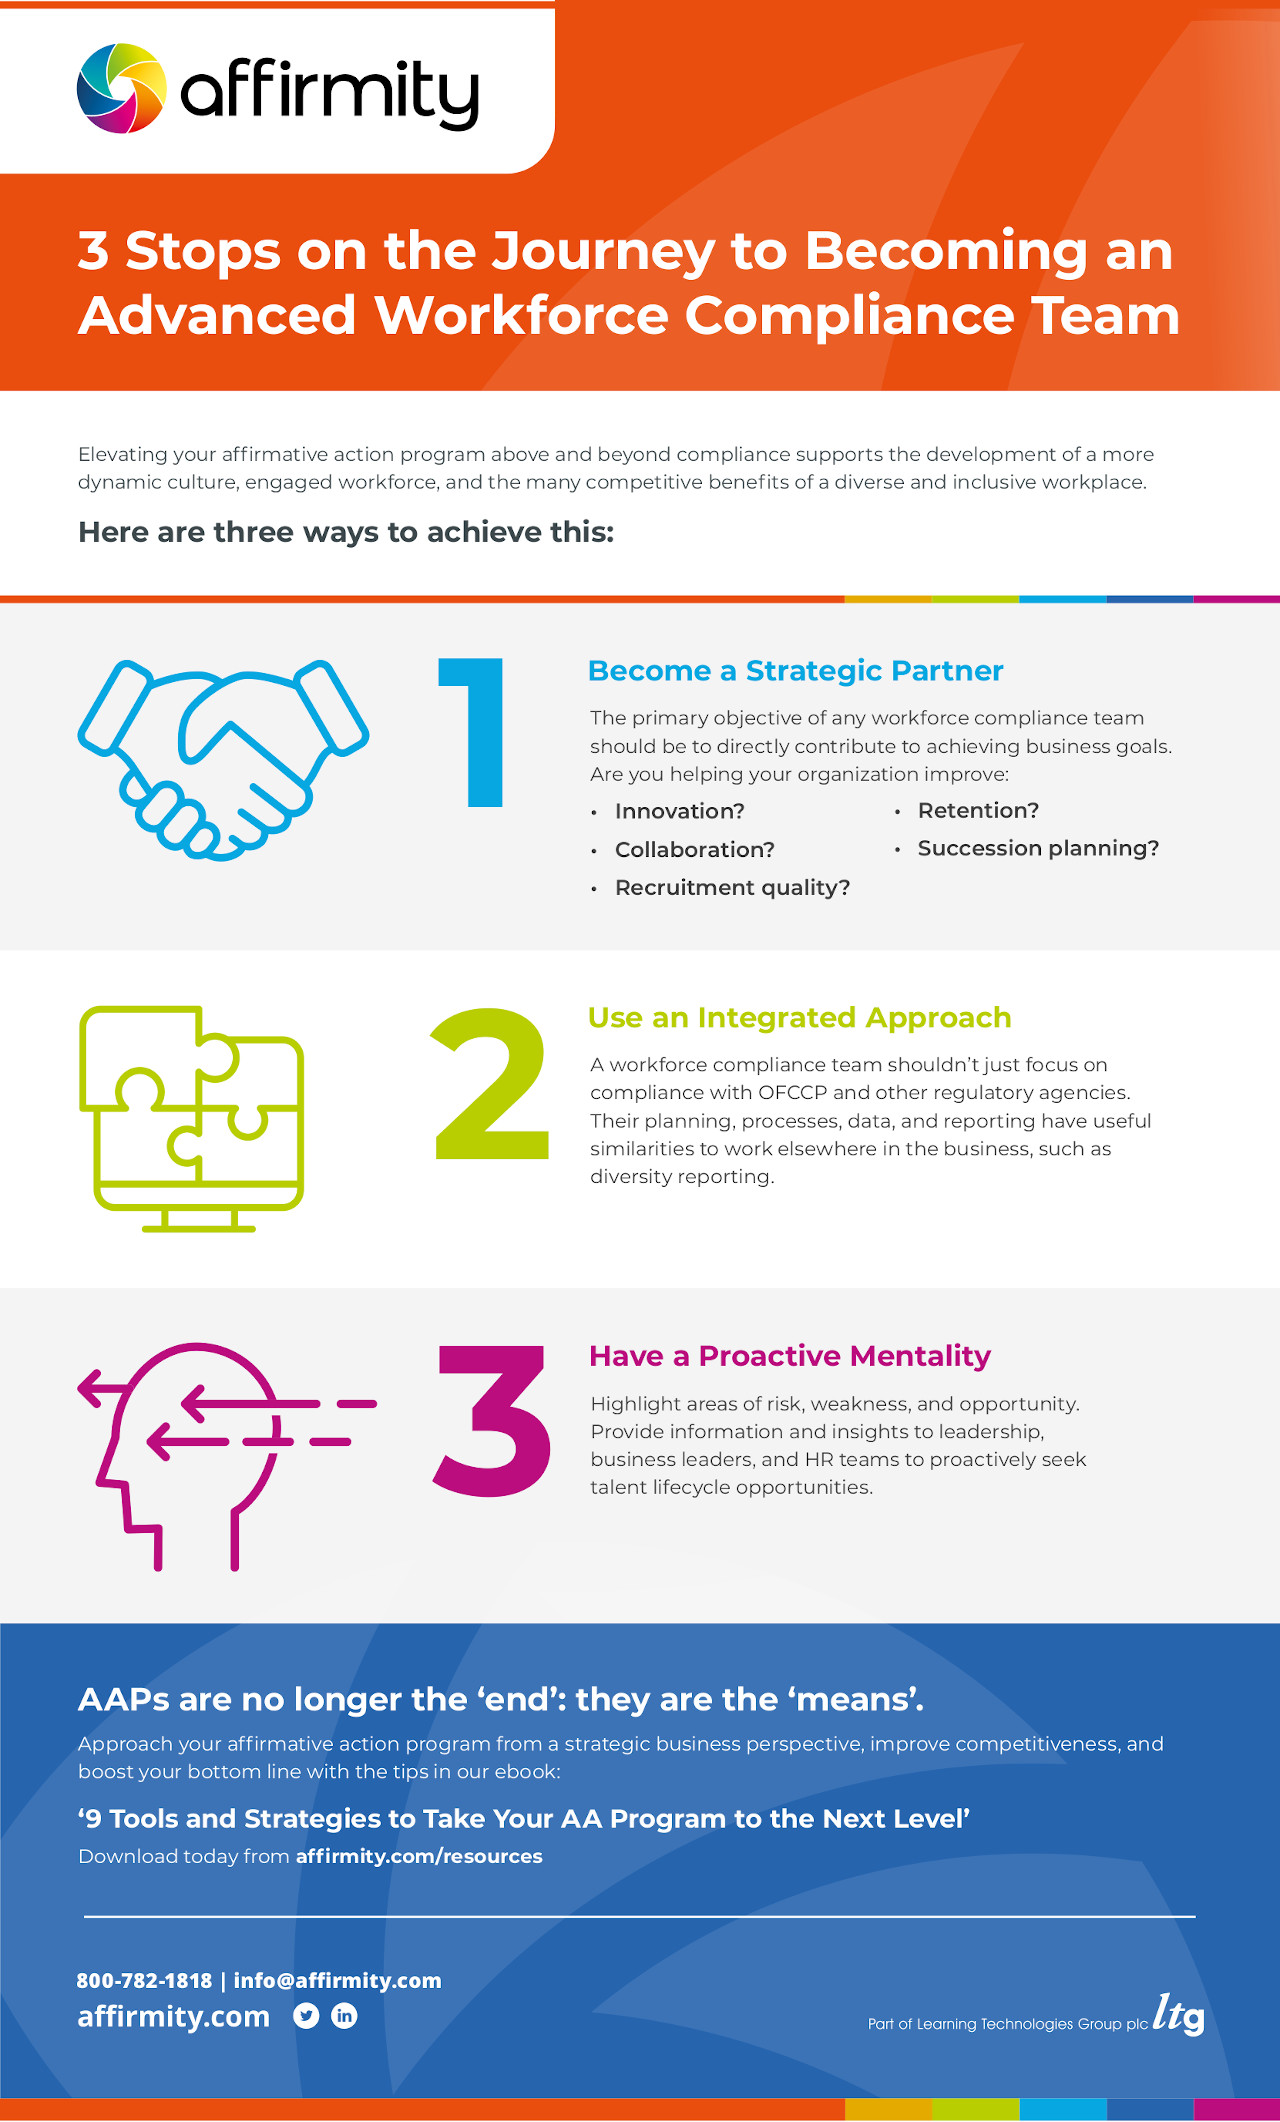 Affirmity - 3 Stops on the Journey to Becoming an Advanced Workforce Compliance Team